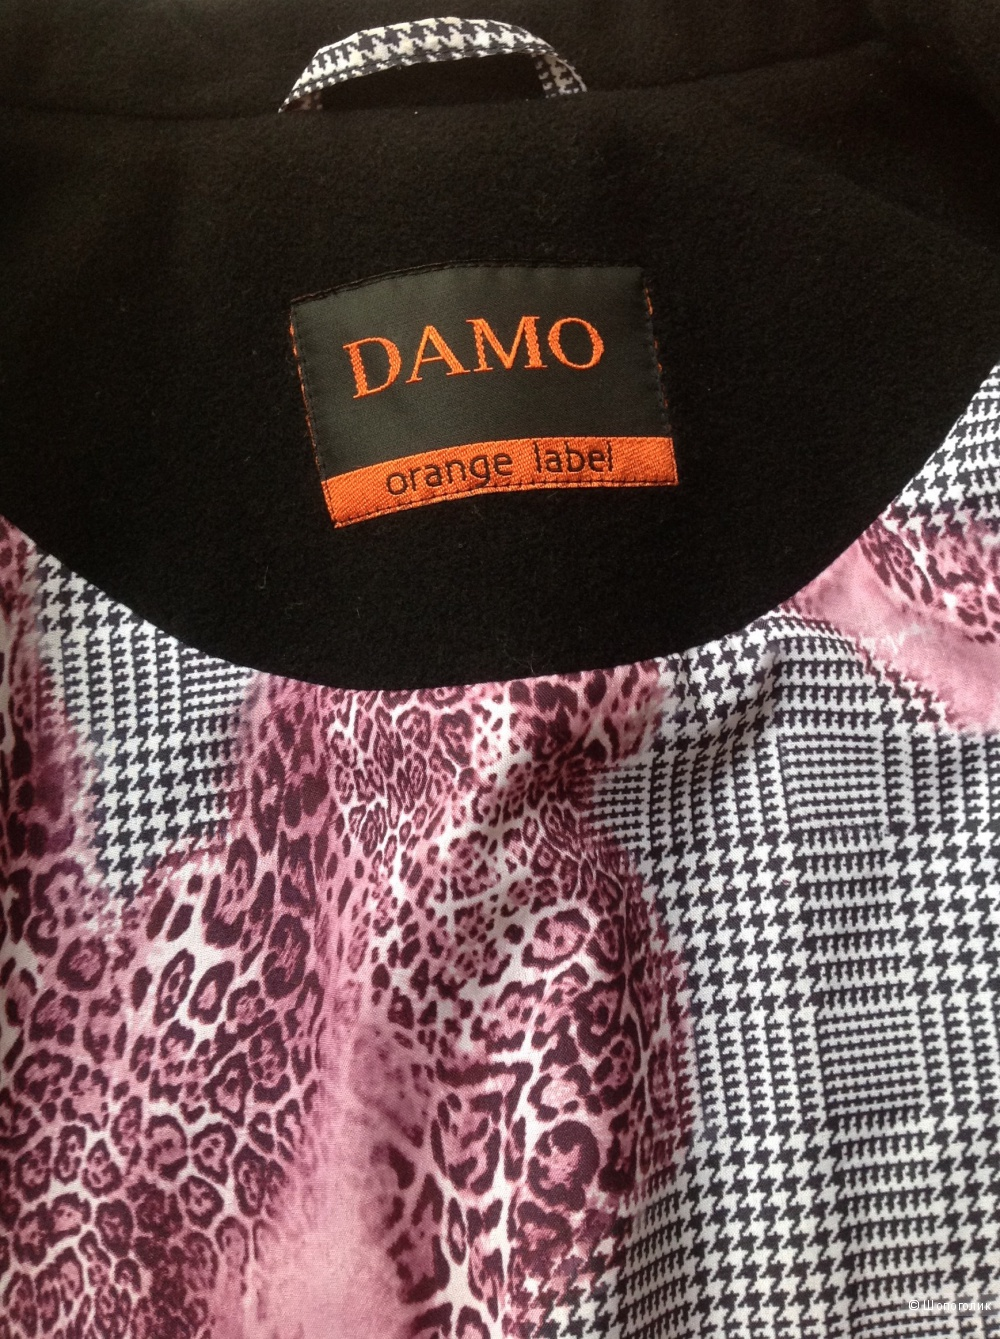 Короткий бушлат Damo orange label, размер 48-50.